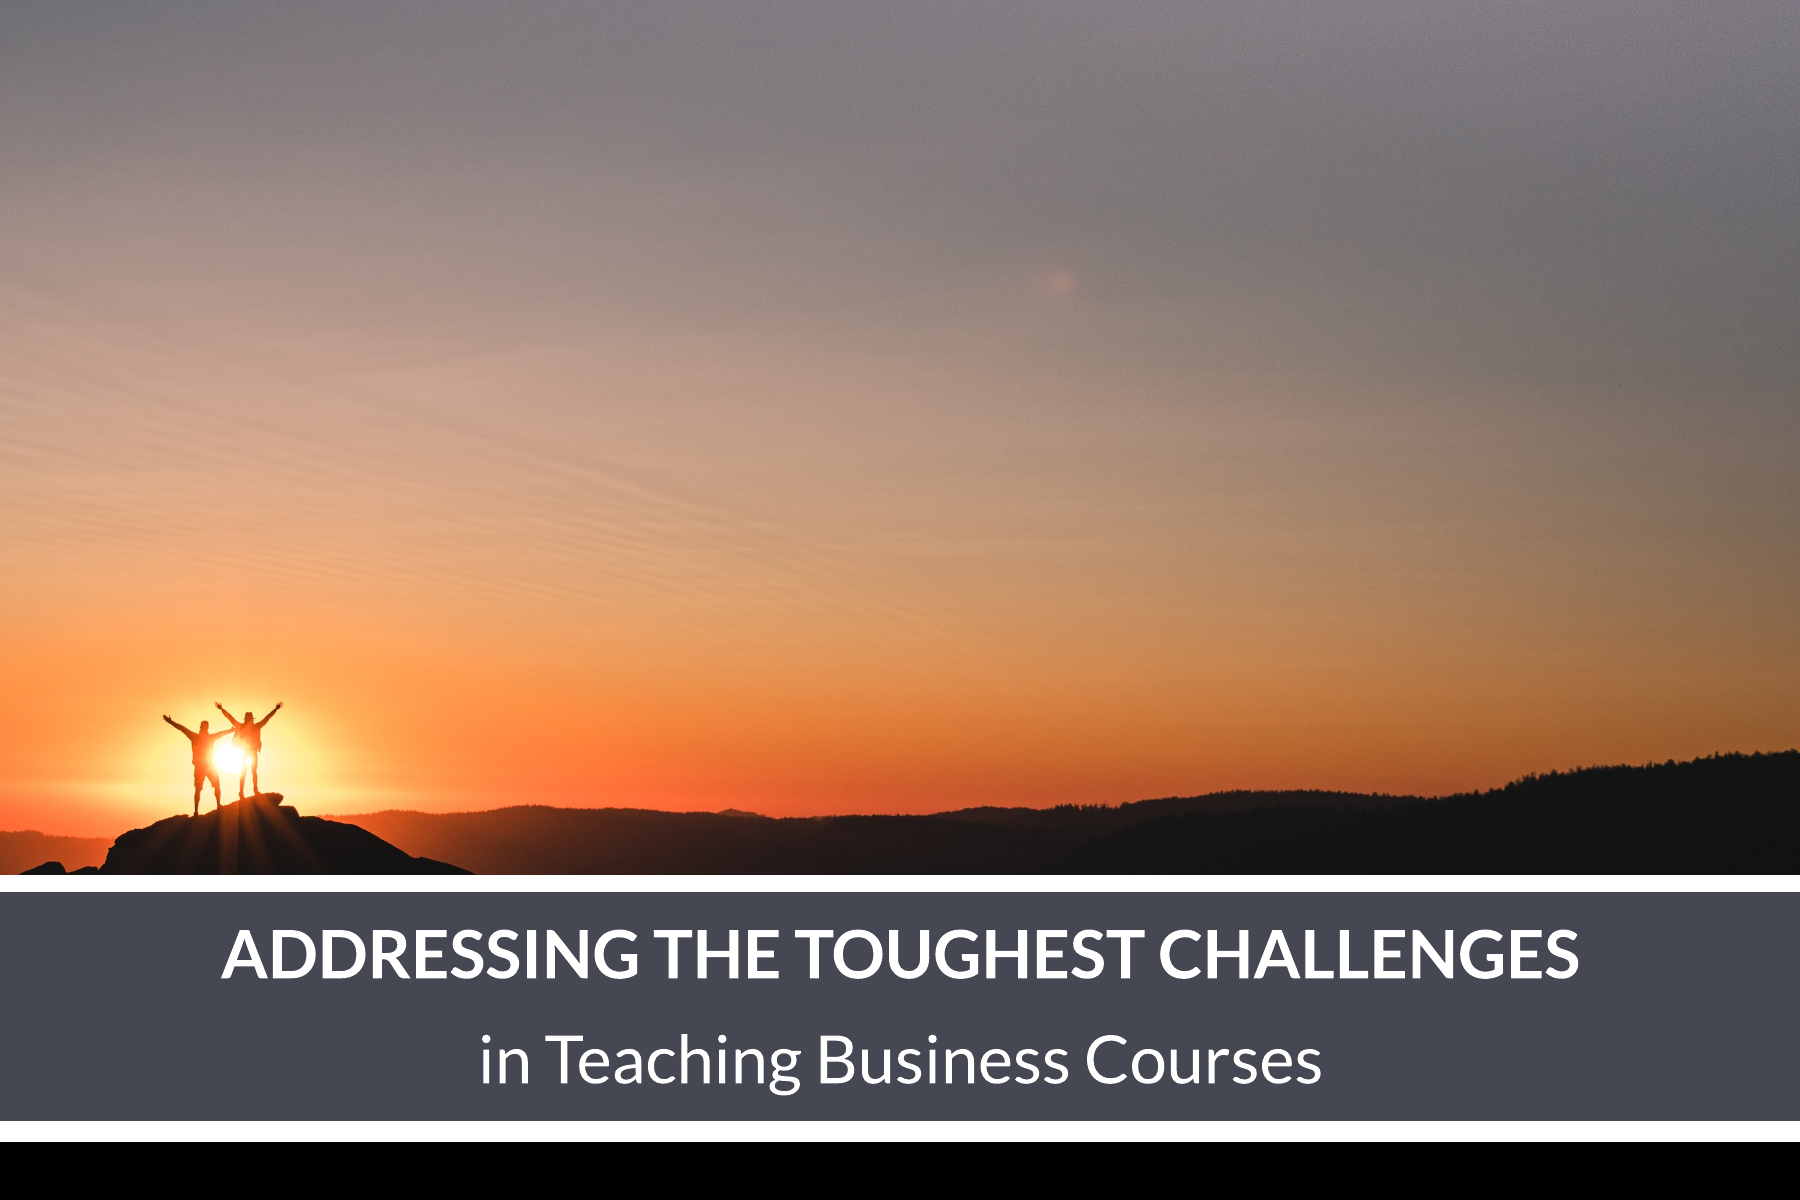 Blog - Addressing the Toughest Challenges in Teaching Business Courses